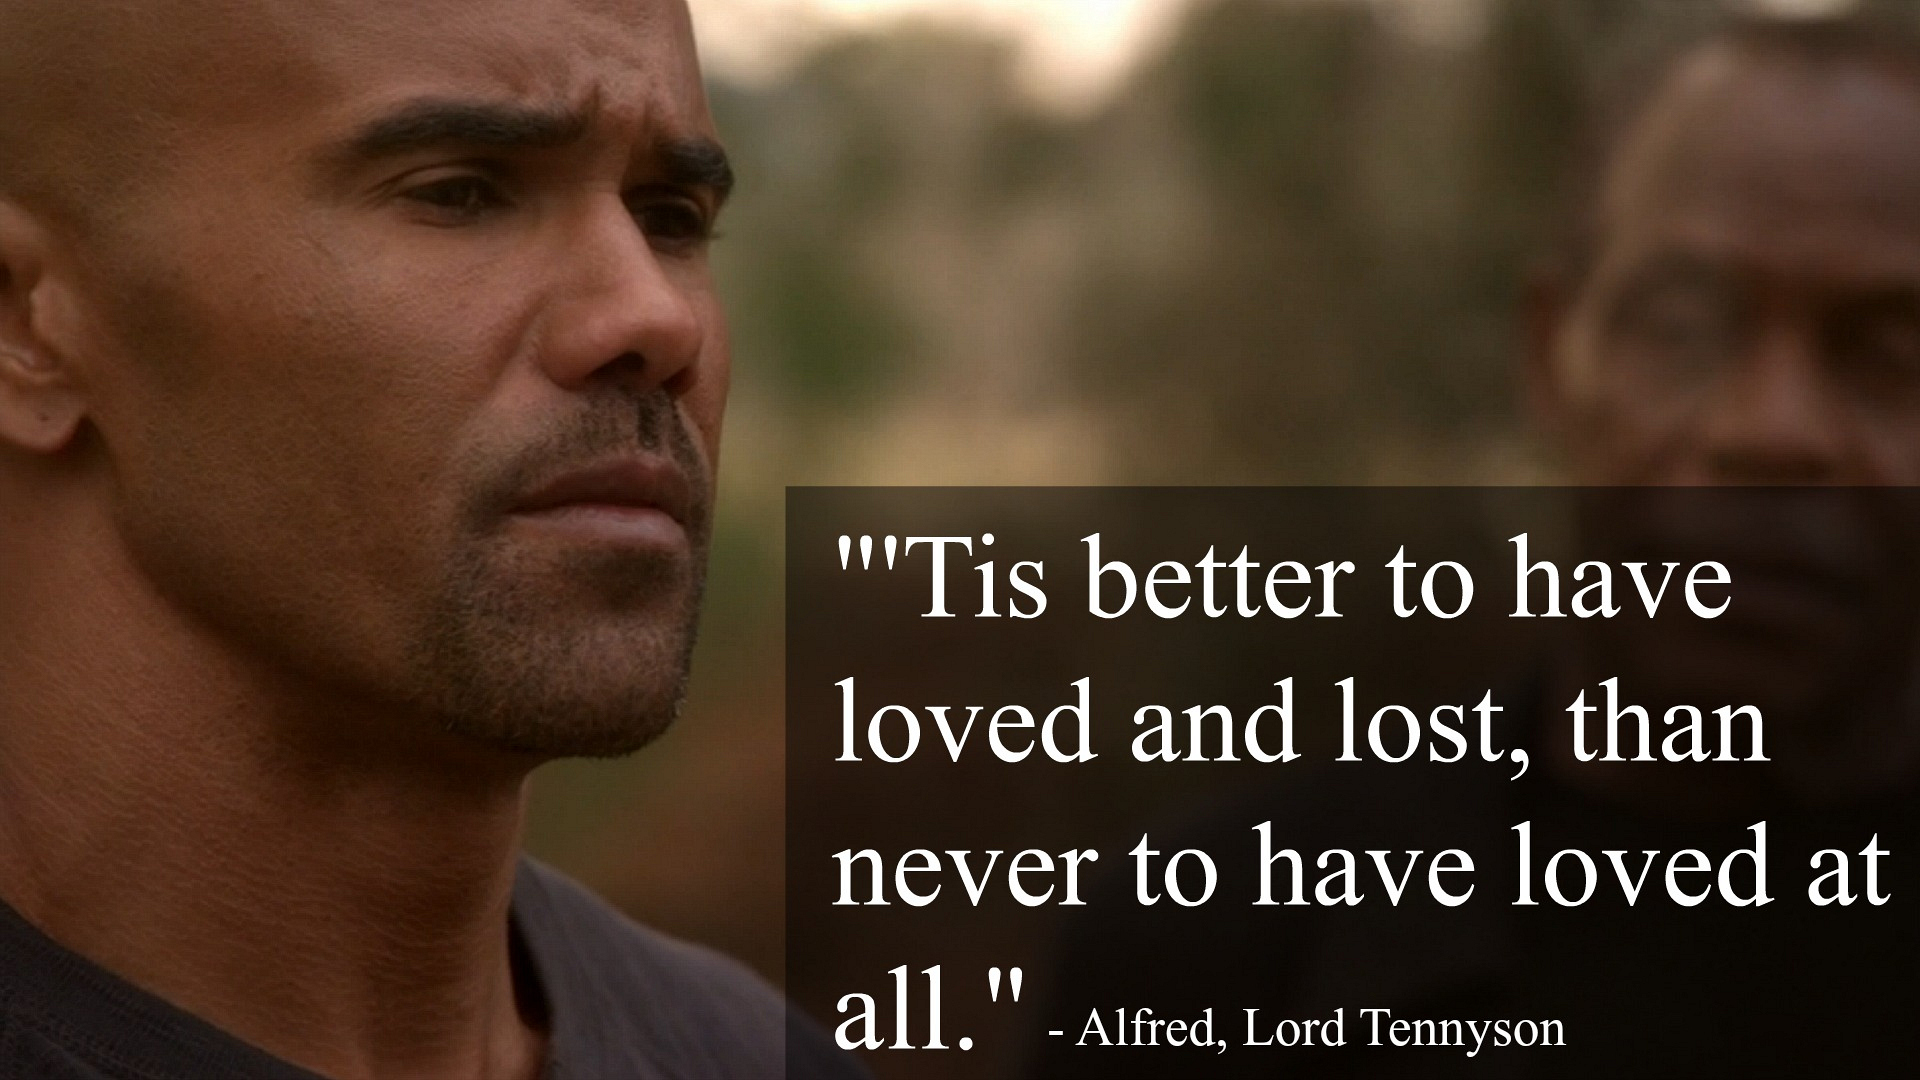 Quotes From Criminal Minds | Criminal Minds 17 Profound Quotes From Season 11 Page 2